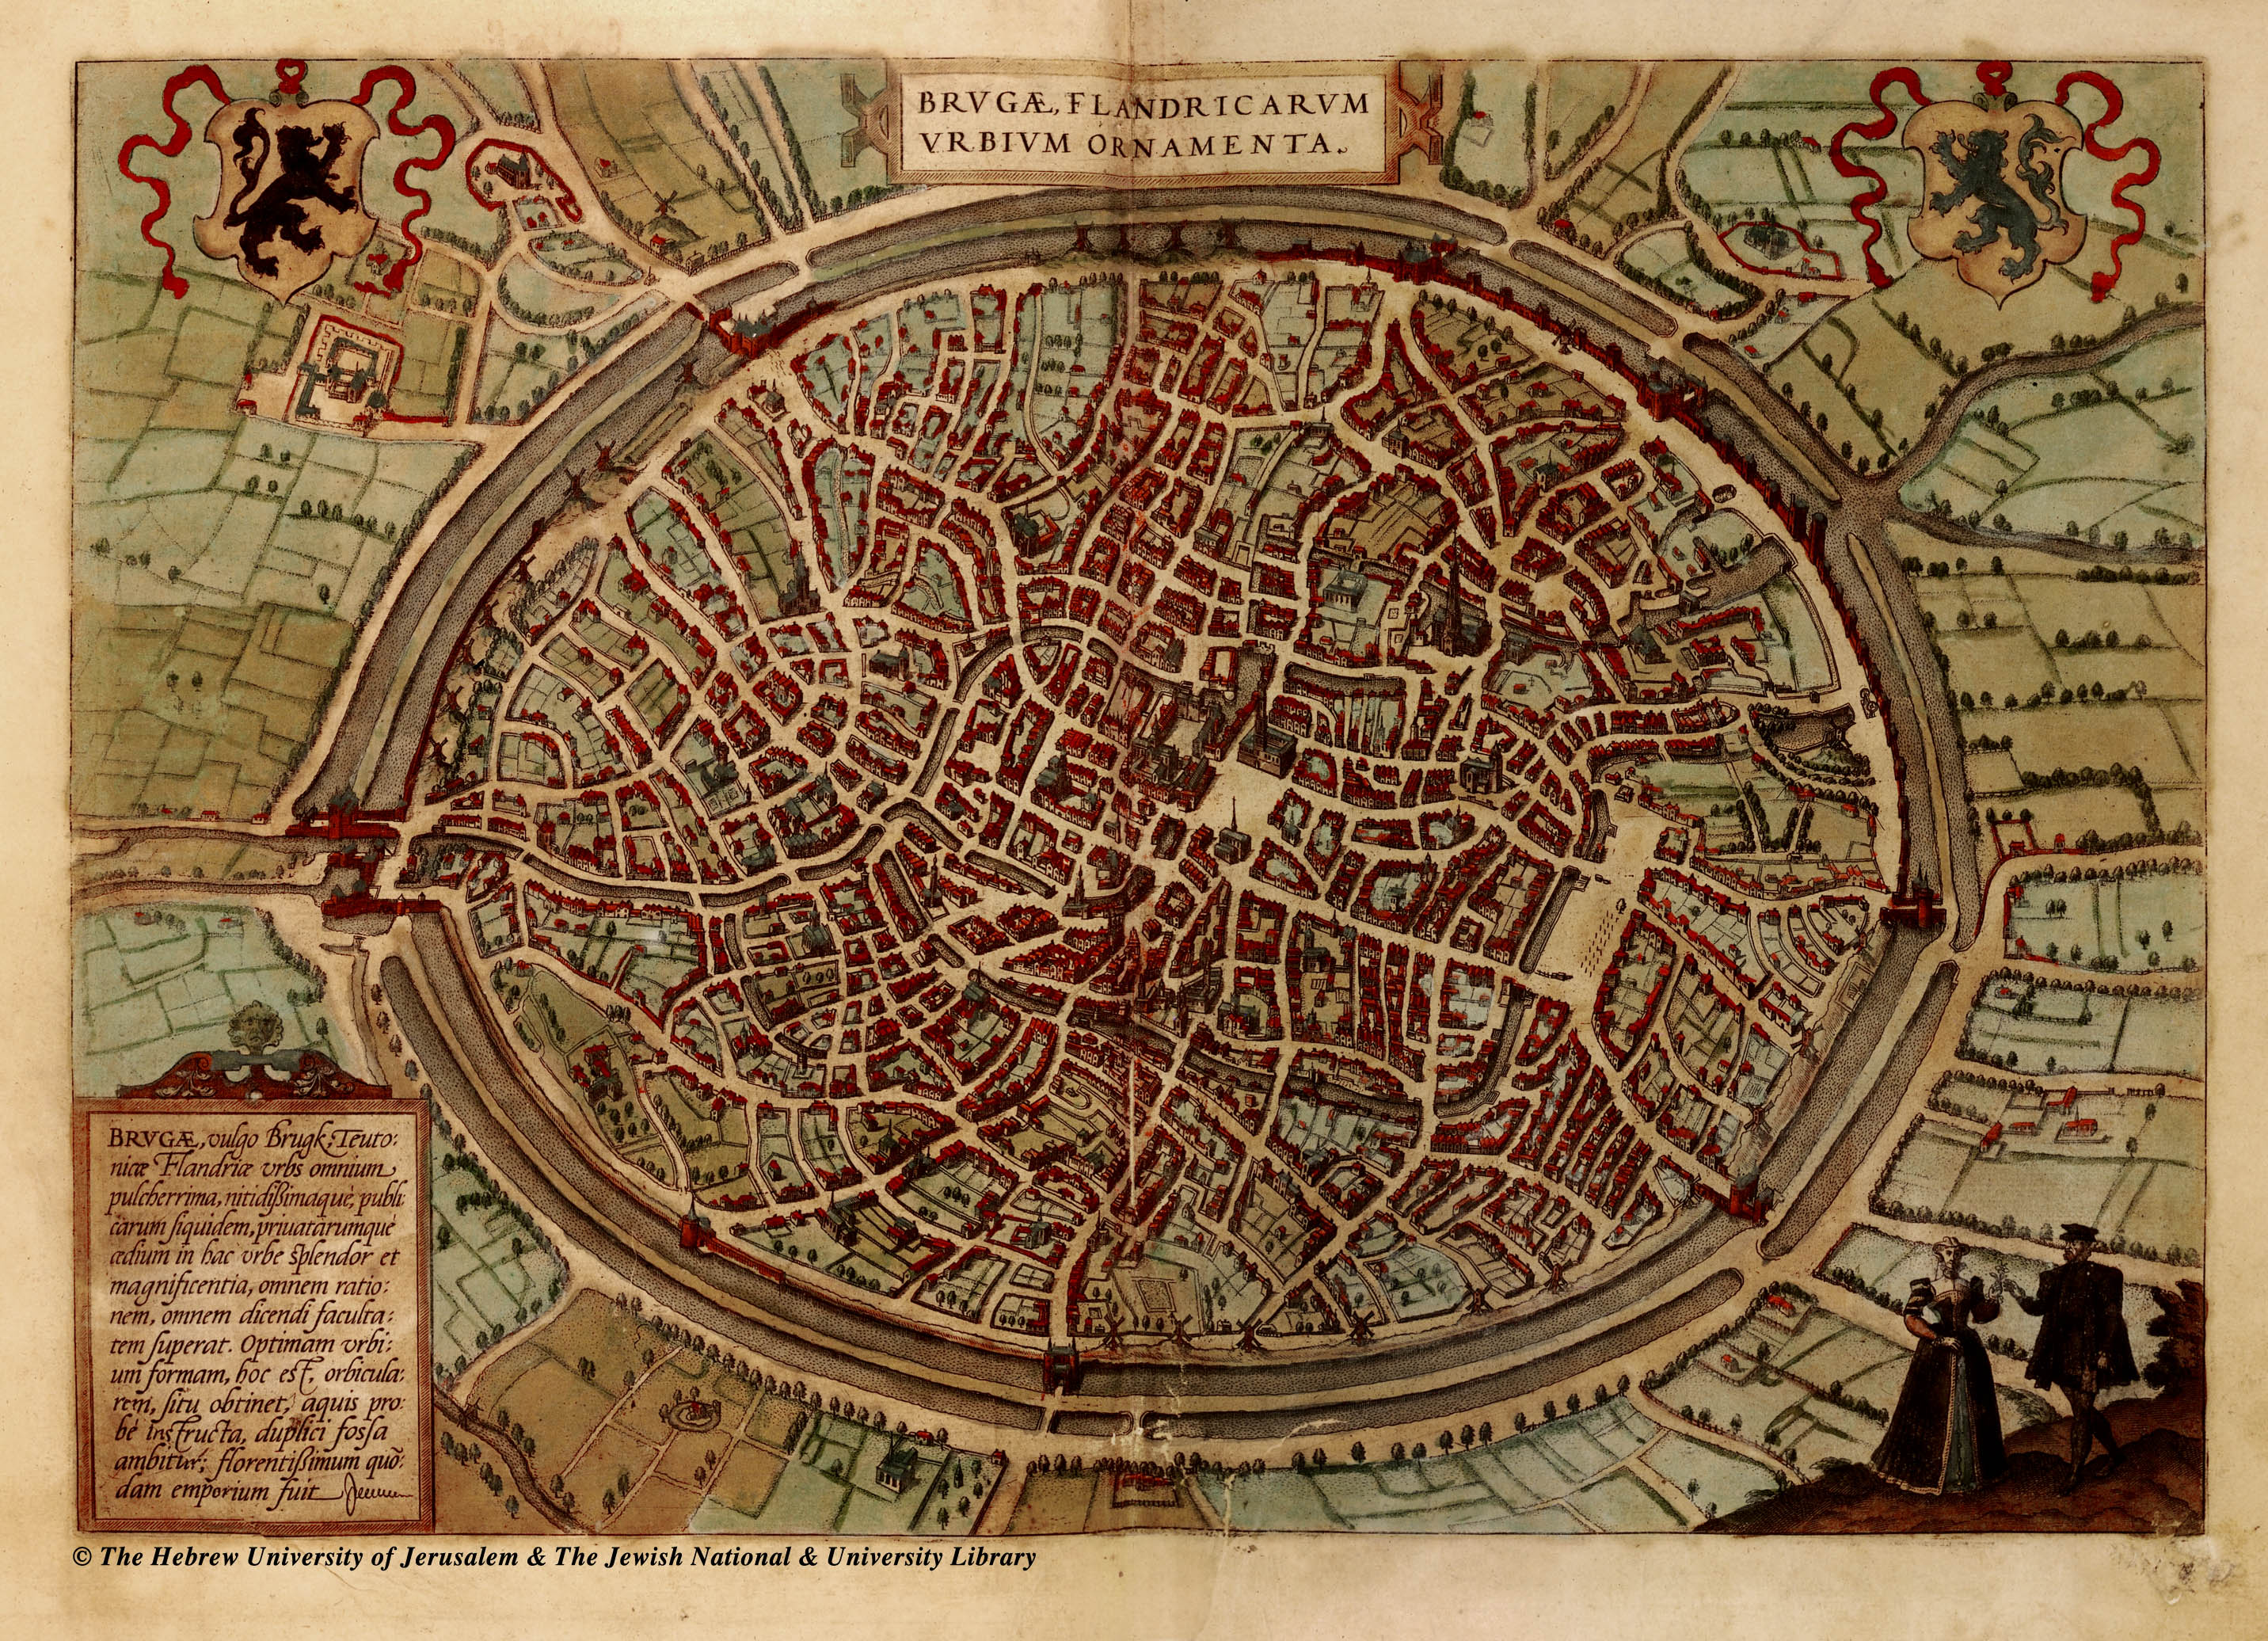 maps-of-medieval-cities-brugge